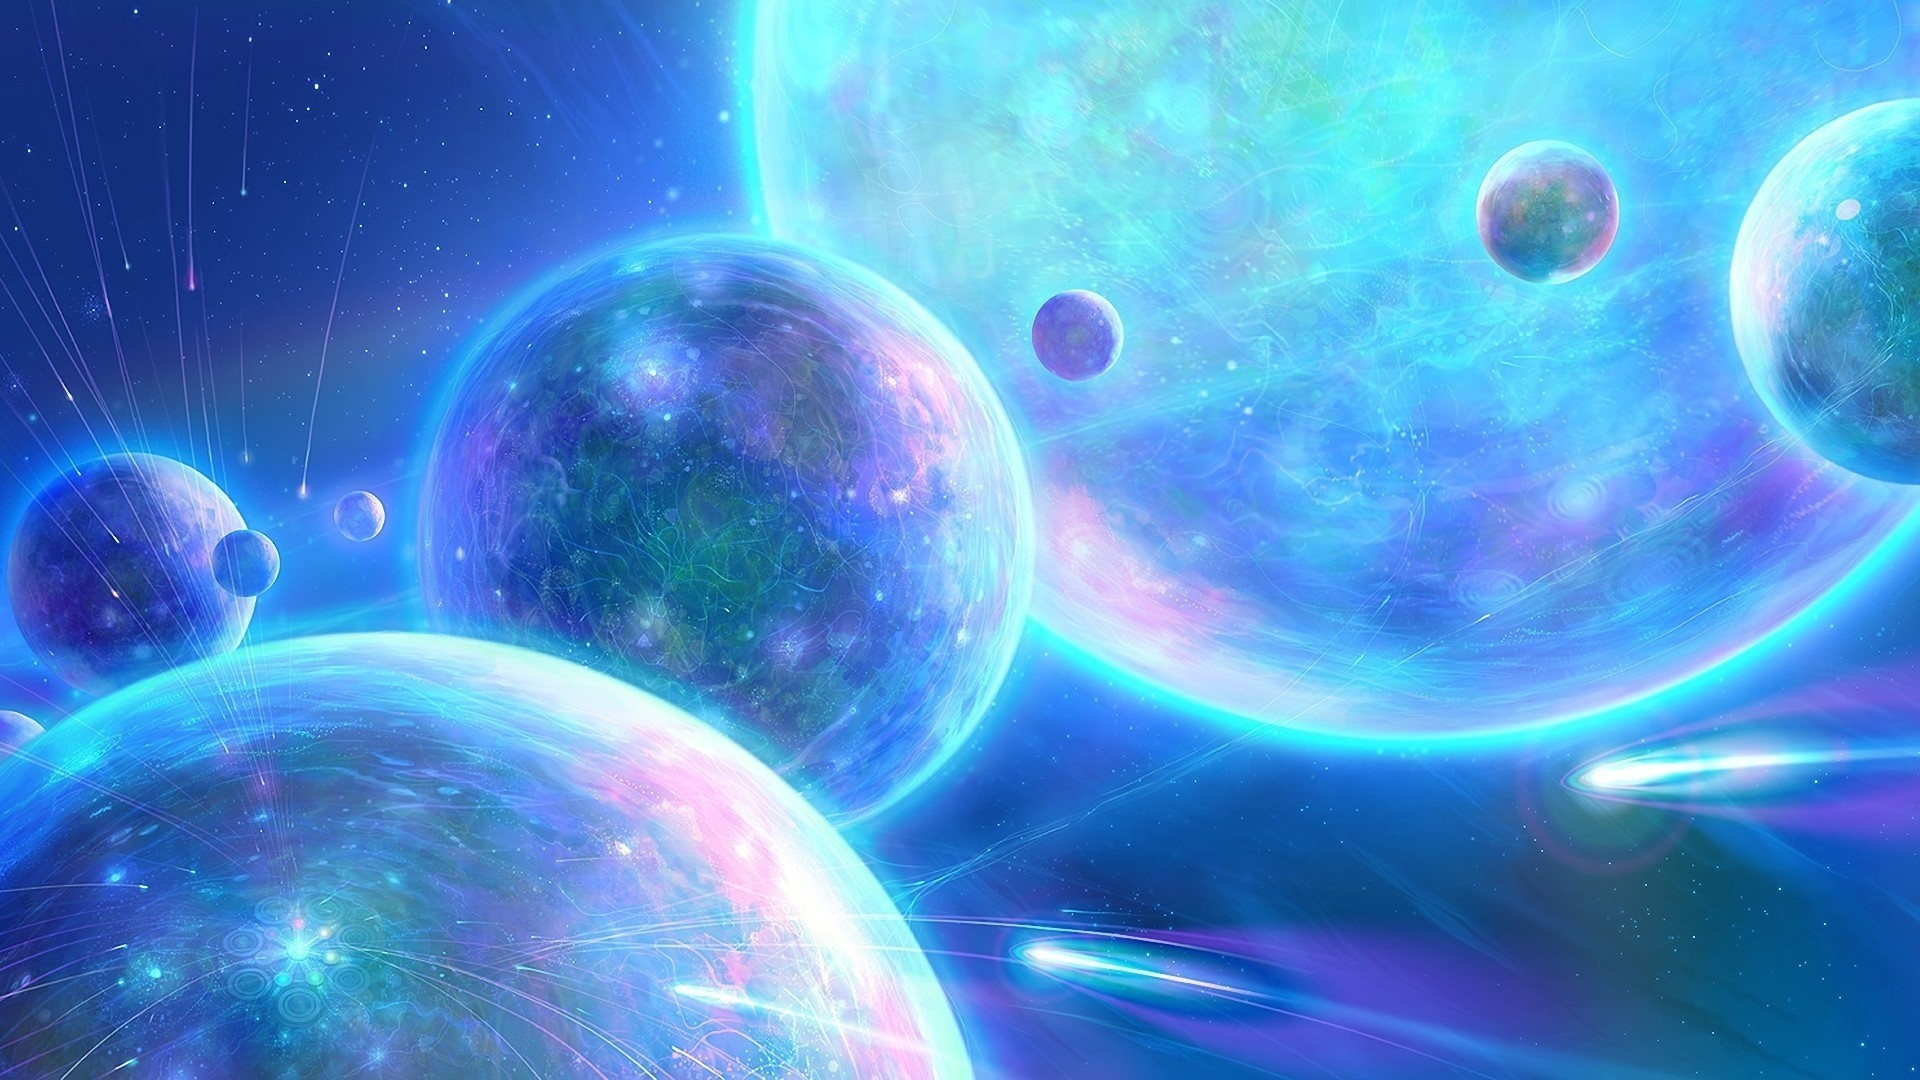 Sci fi science fiction planets space universe moon stars ...